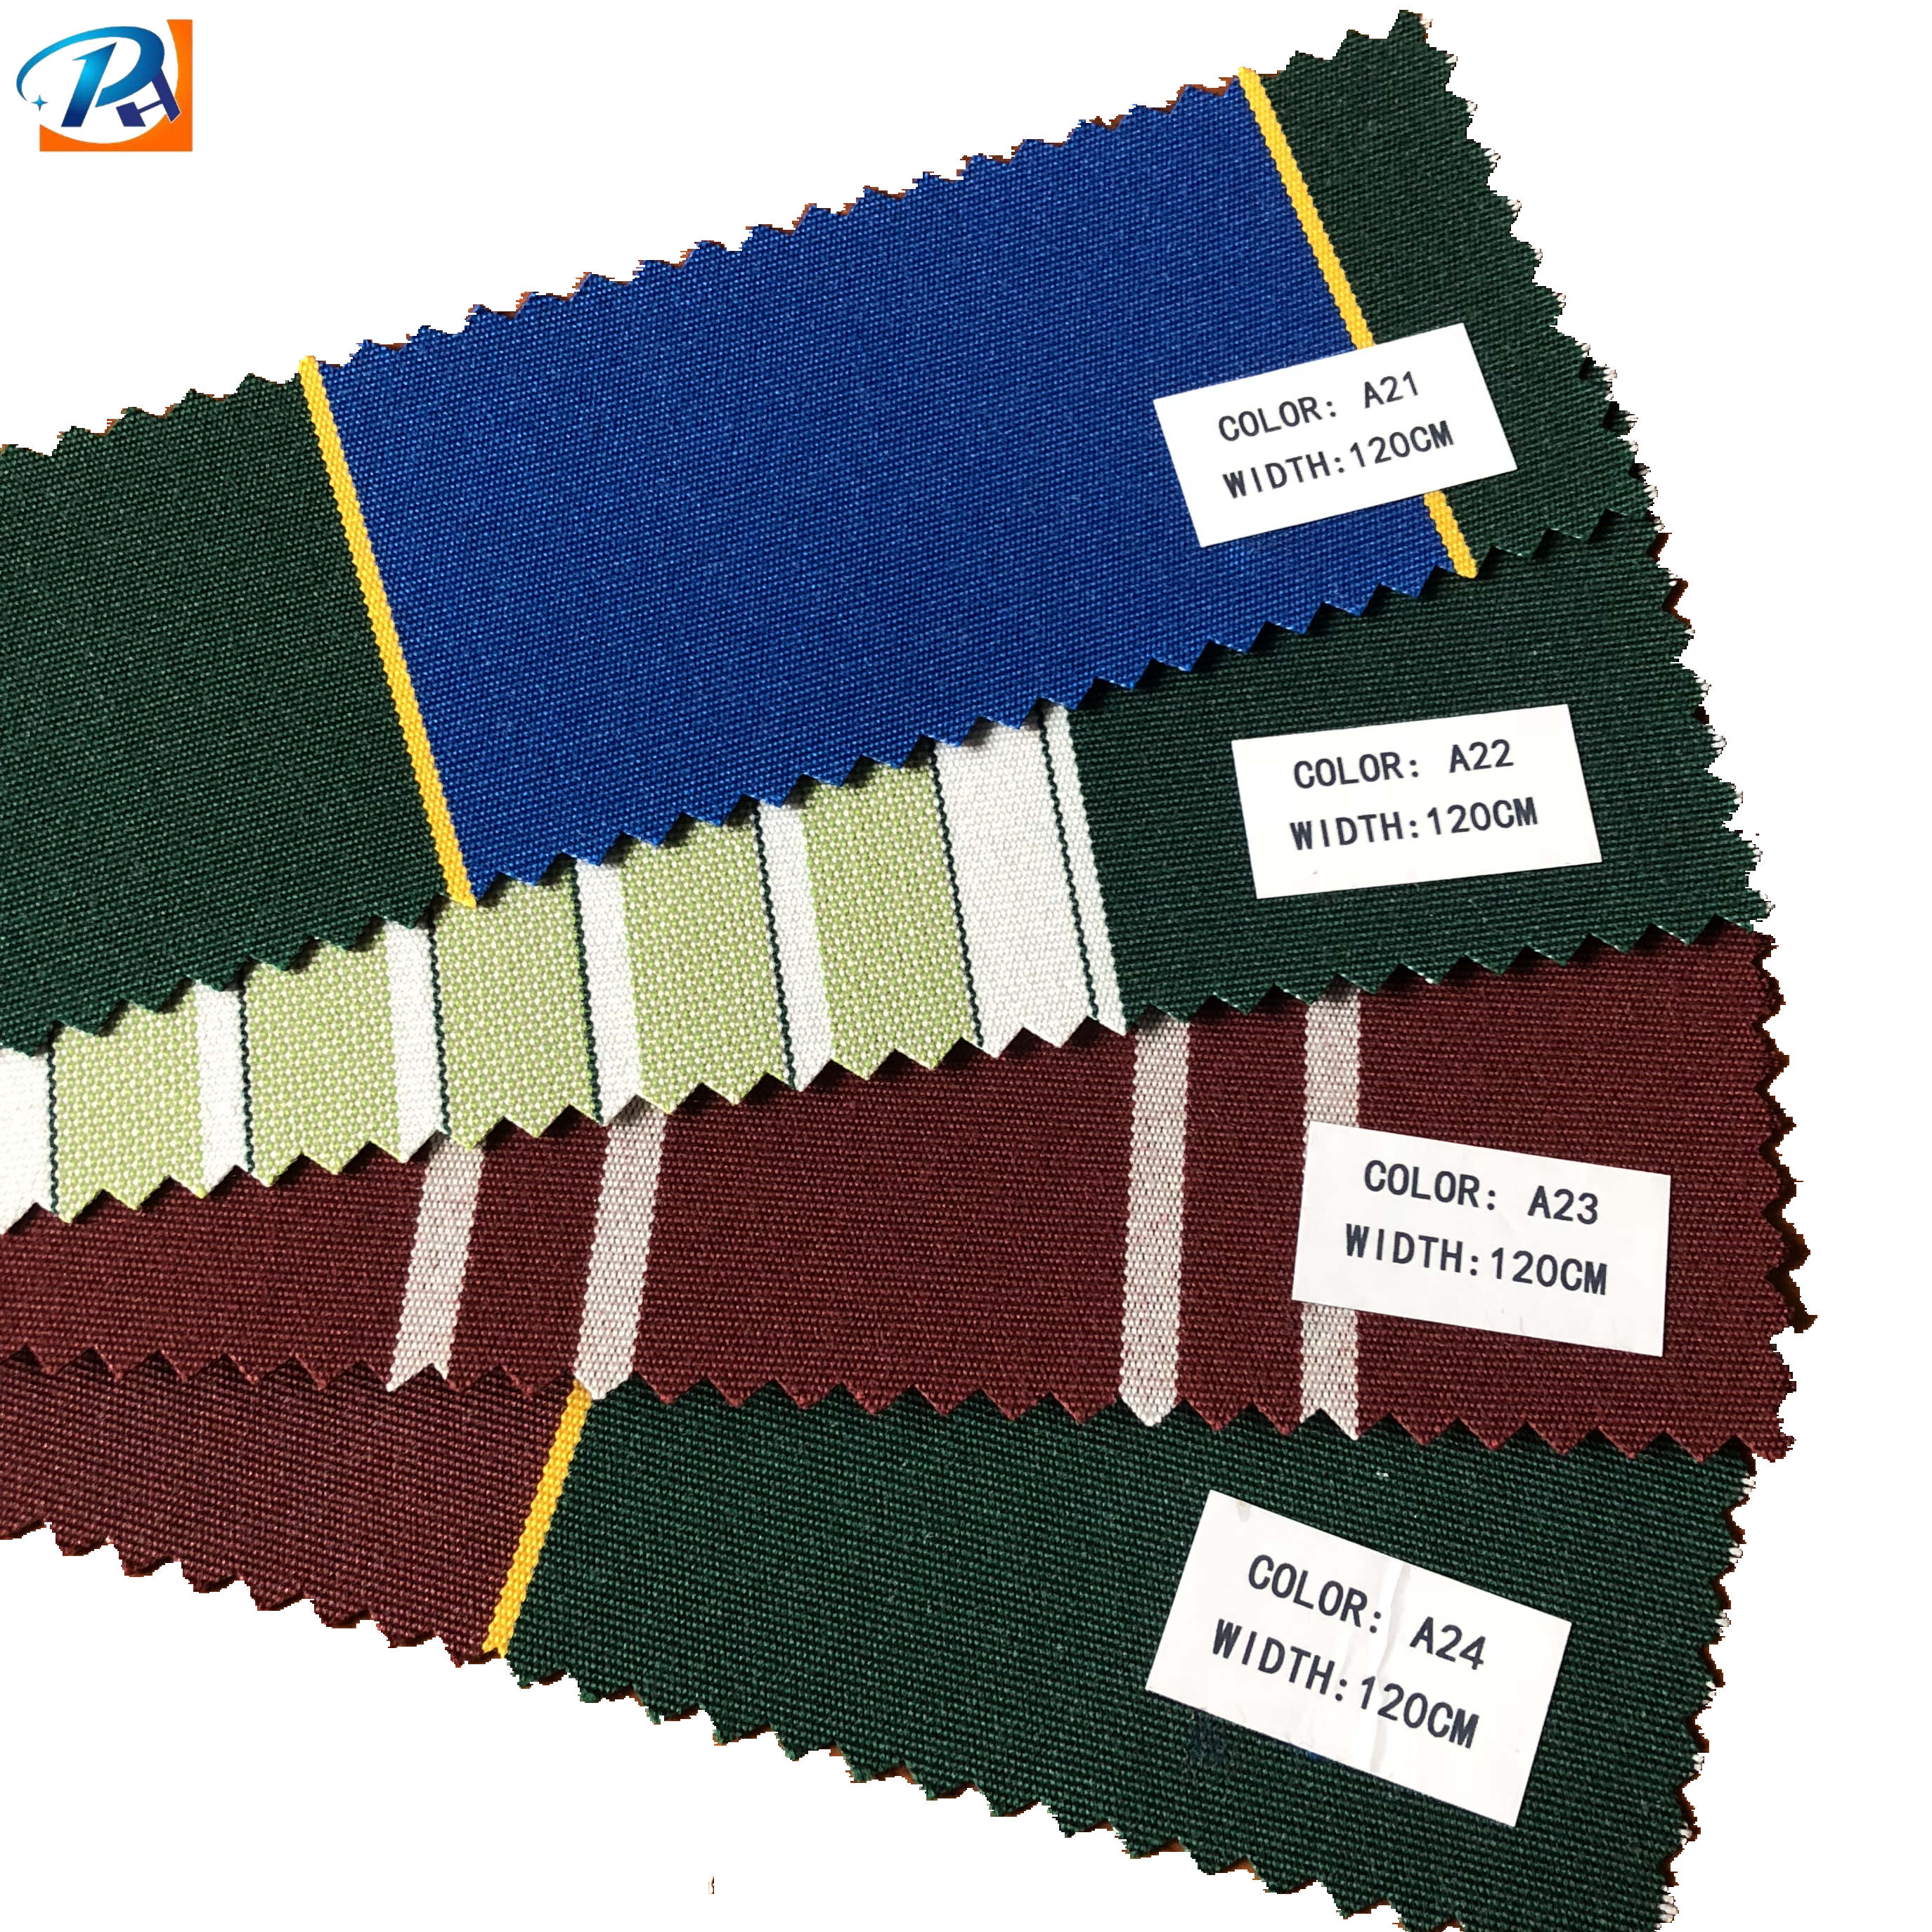 5 years warranty solution dyed acrylic outdoor awning marine canvas fabric